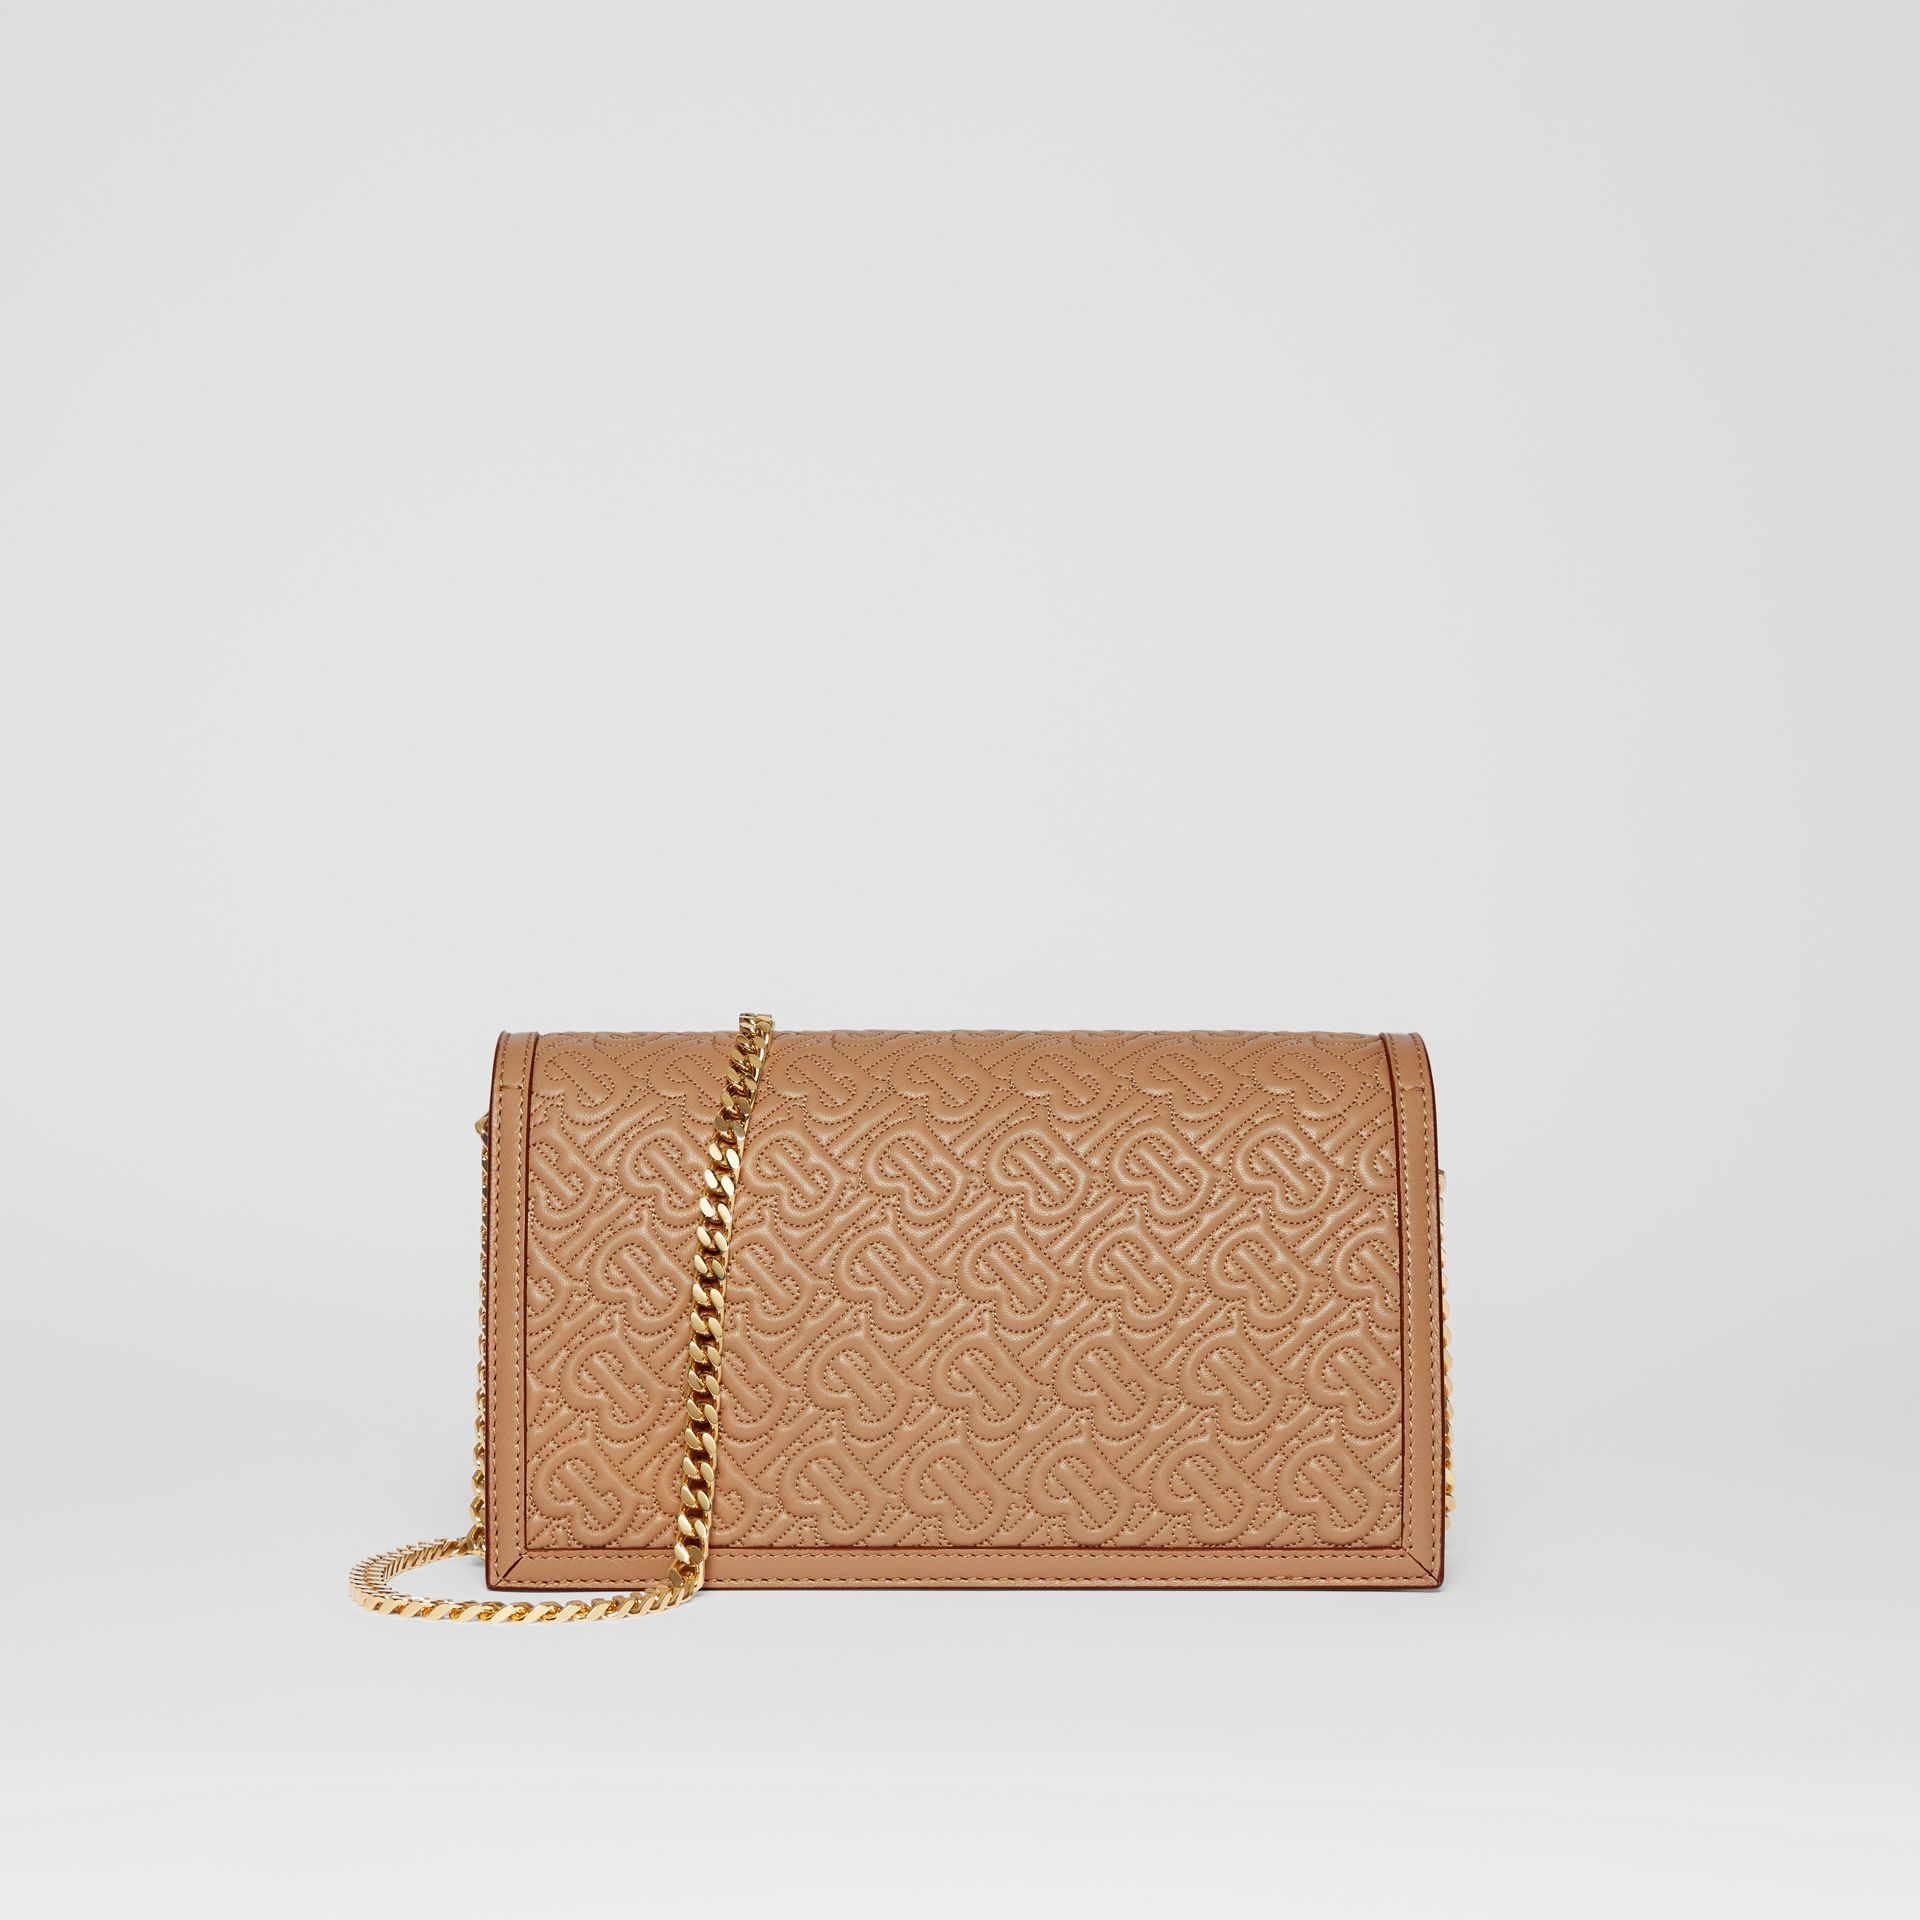 Small Quilted Monogram TB Envelope Clutch in Honey - Women | Burberry - gallery image 7